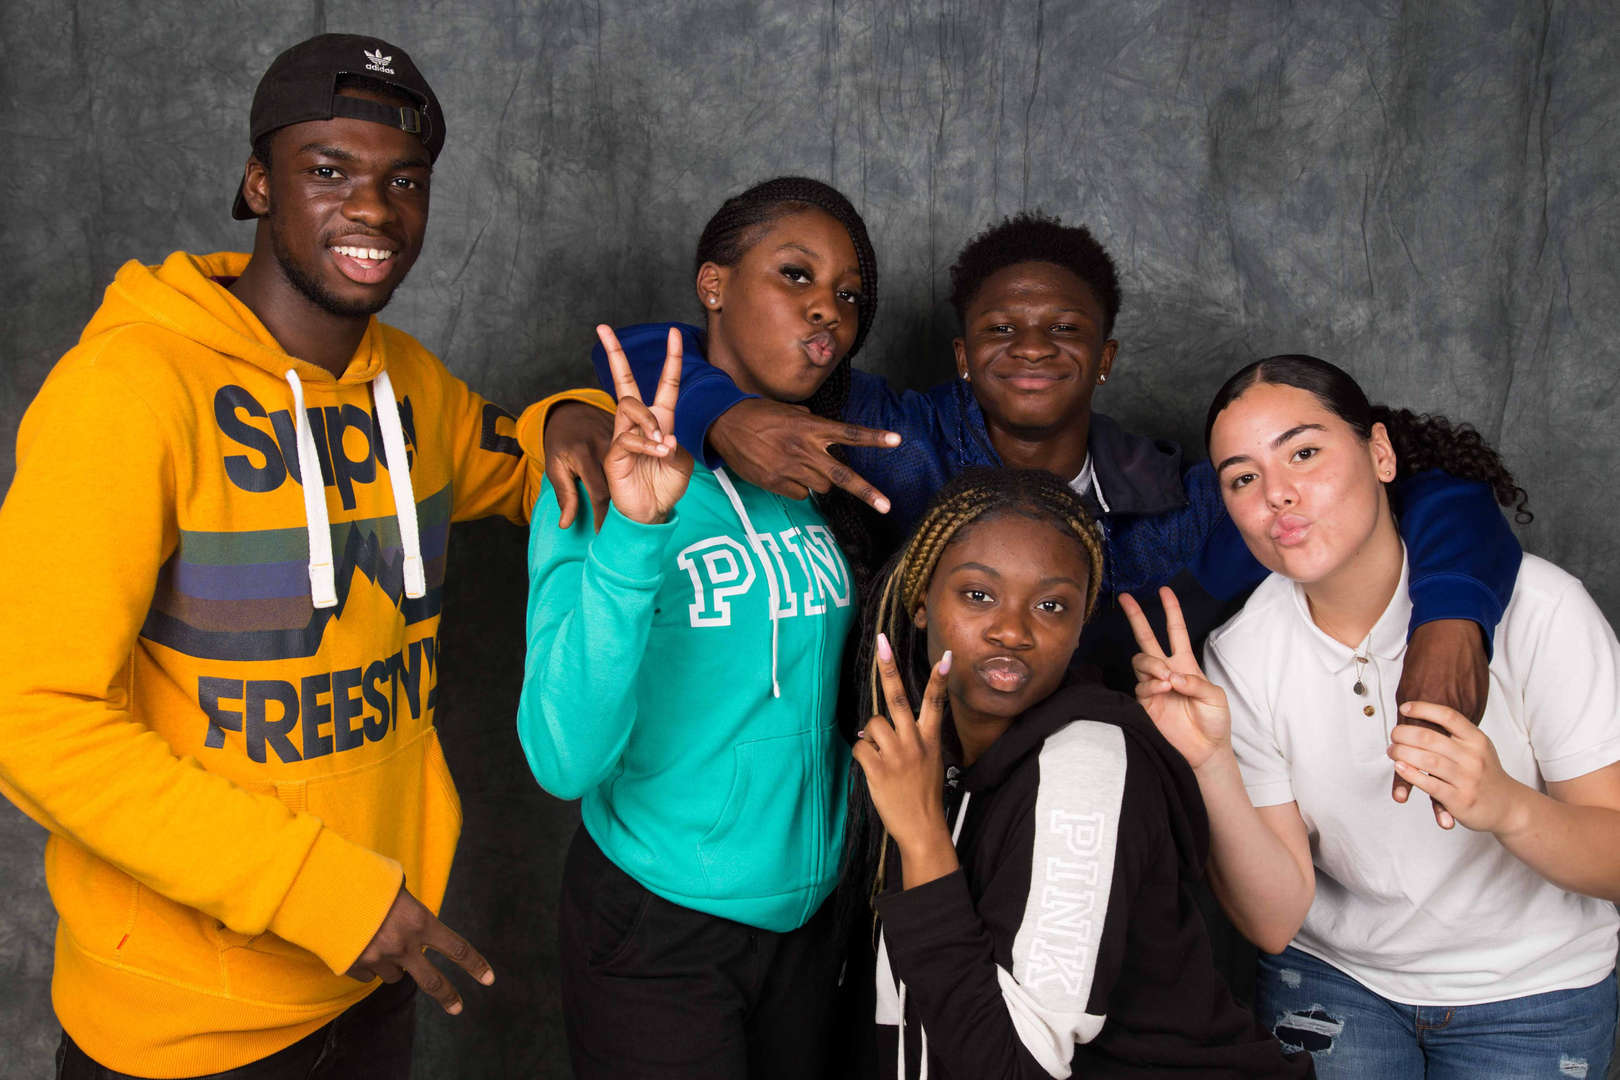 Five students posing together